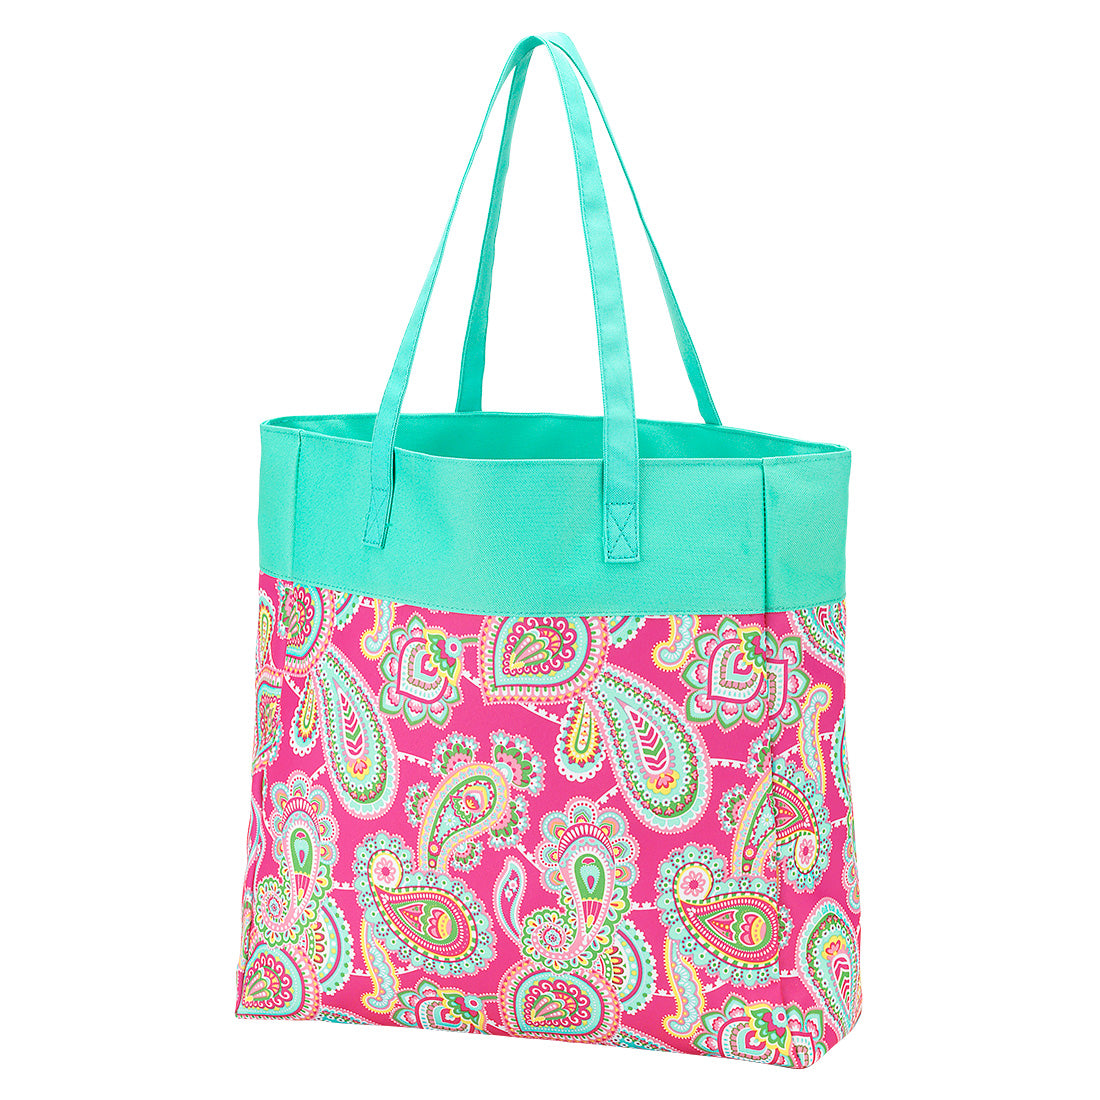 The Madeline Paisley Tote